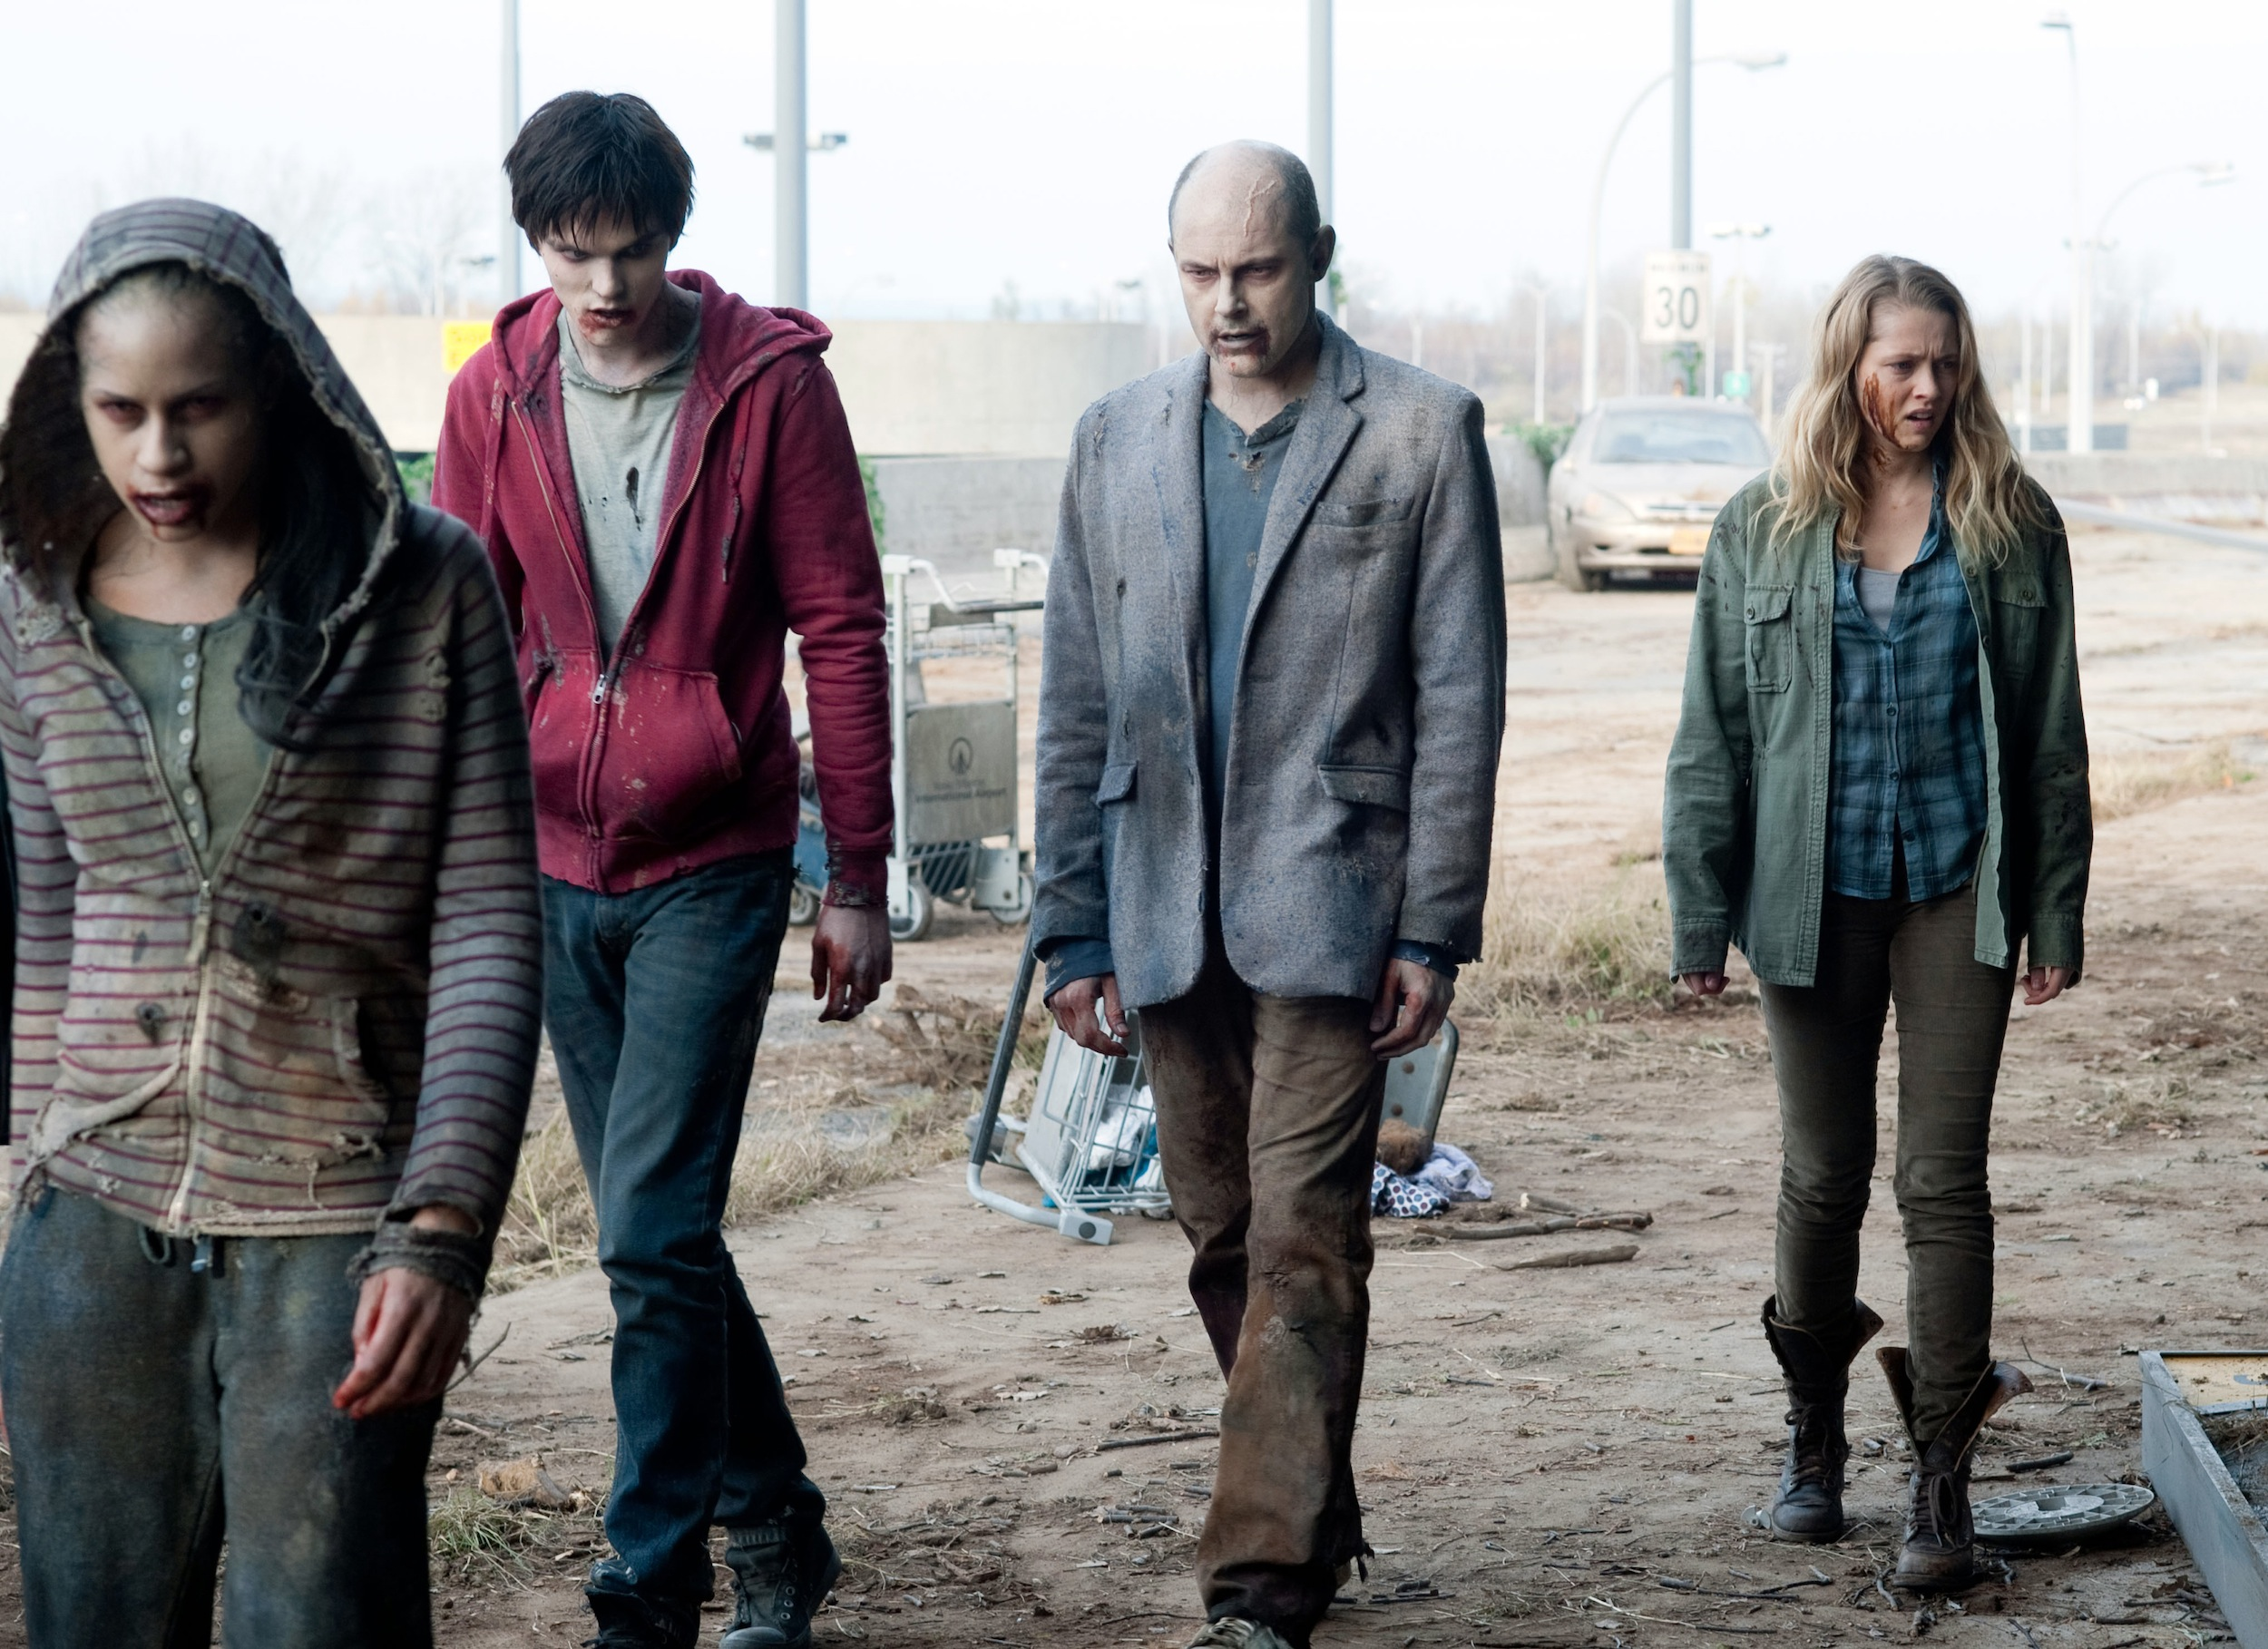 WB 085 DF 12385 Rob Corddry Discusses The Finer Points Of Zombie Acting In Warm Bodies Short